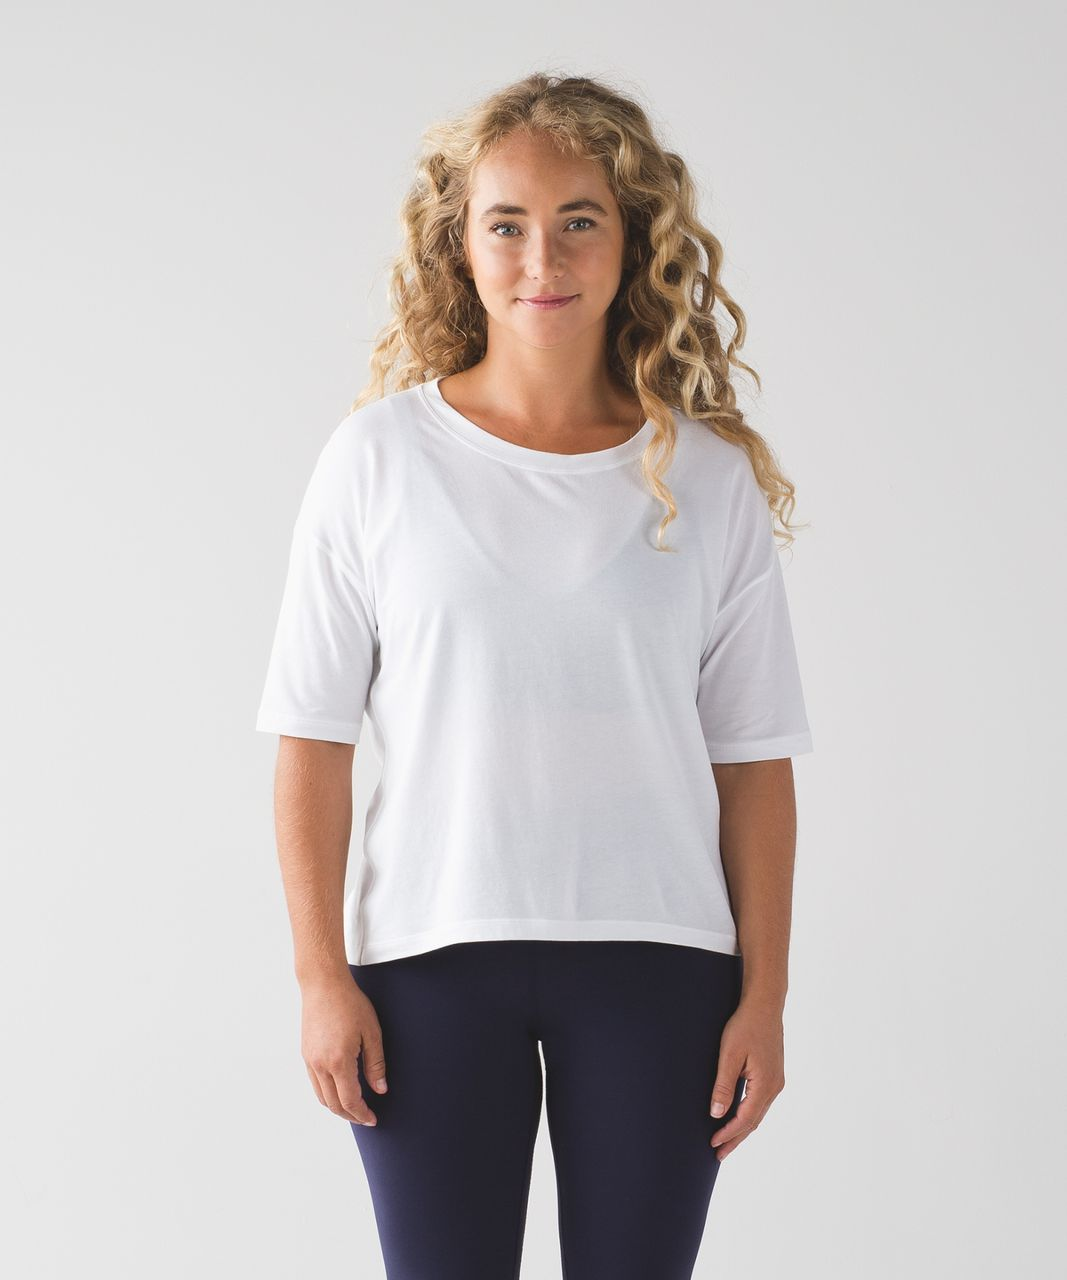 Lululemon Ambleside Crew Short Sleeve - White